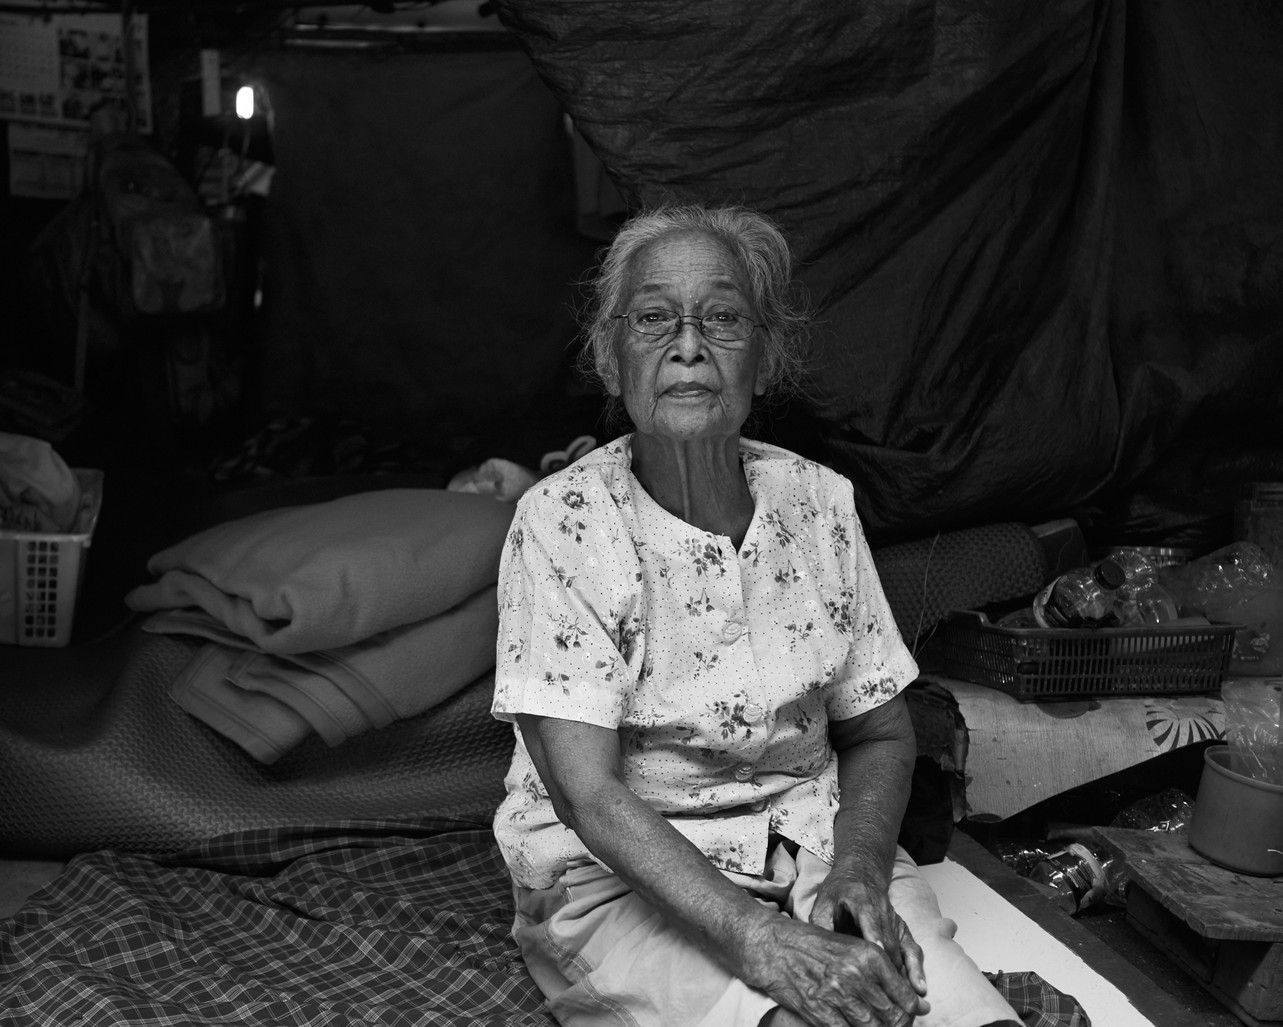 Located at the end of the alleyway, Ibu Nasrih set up a homemade tent where she lives with her mother (in this picture), husband and daughter Asti. Ibu Nasrih's mother is disabled and would sit in this position all day as the constant traffic passes by above her.